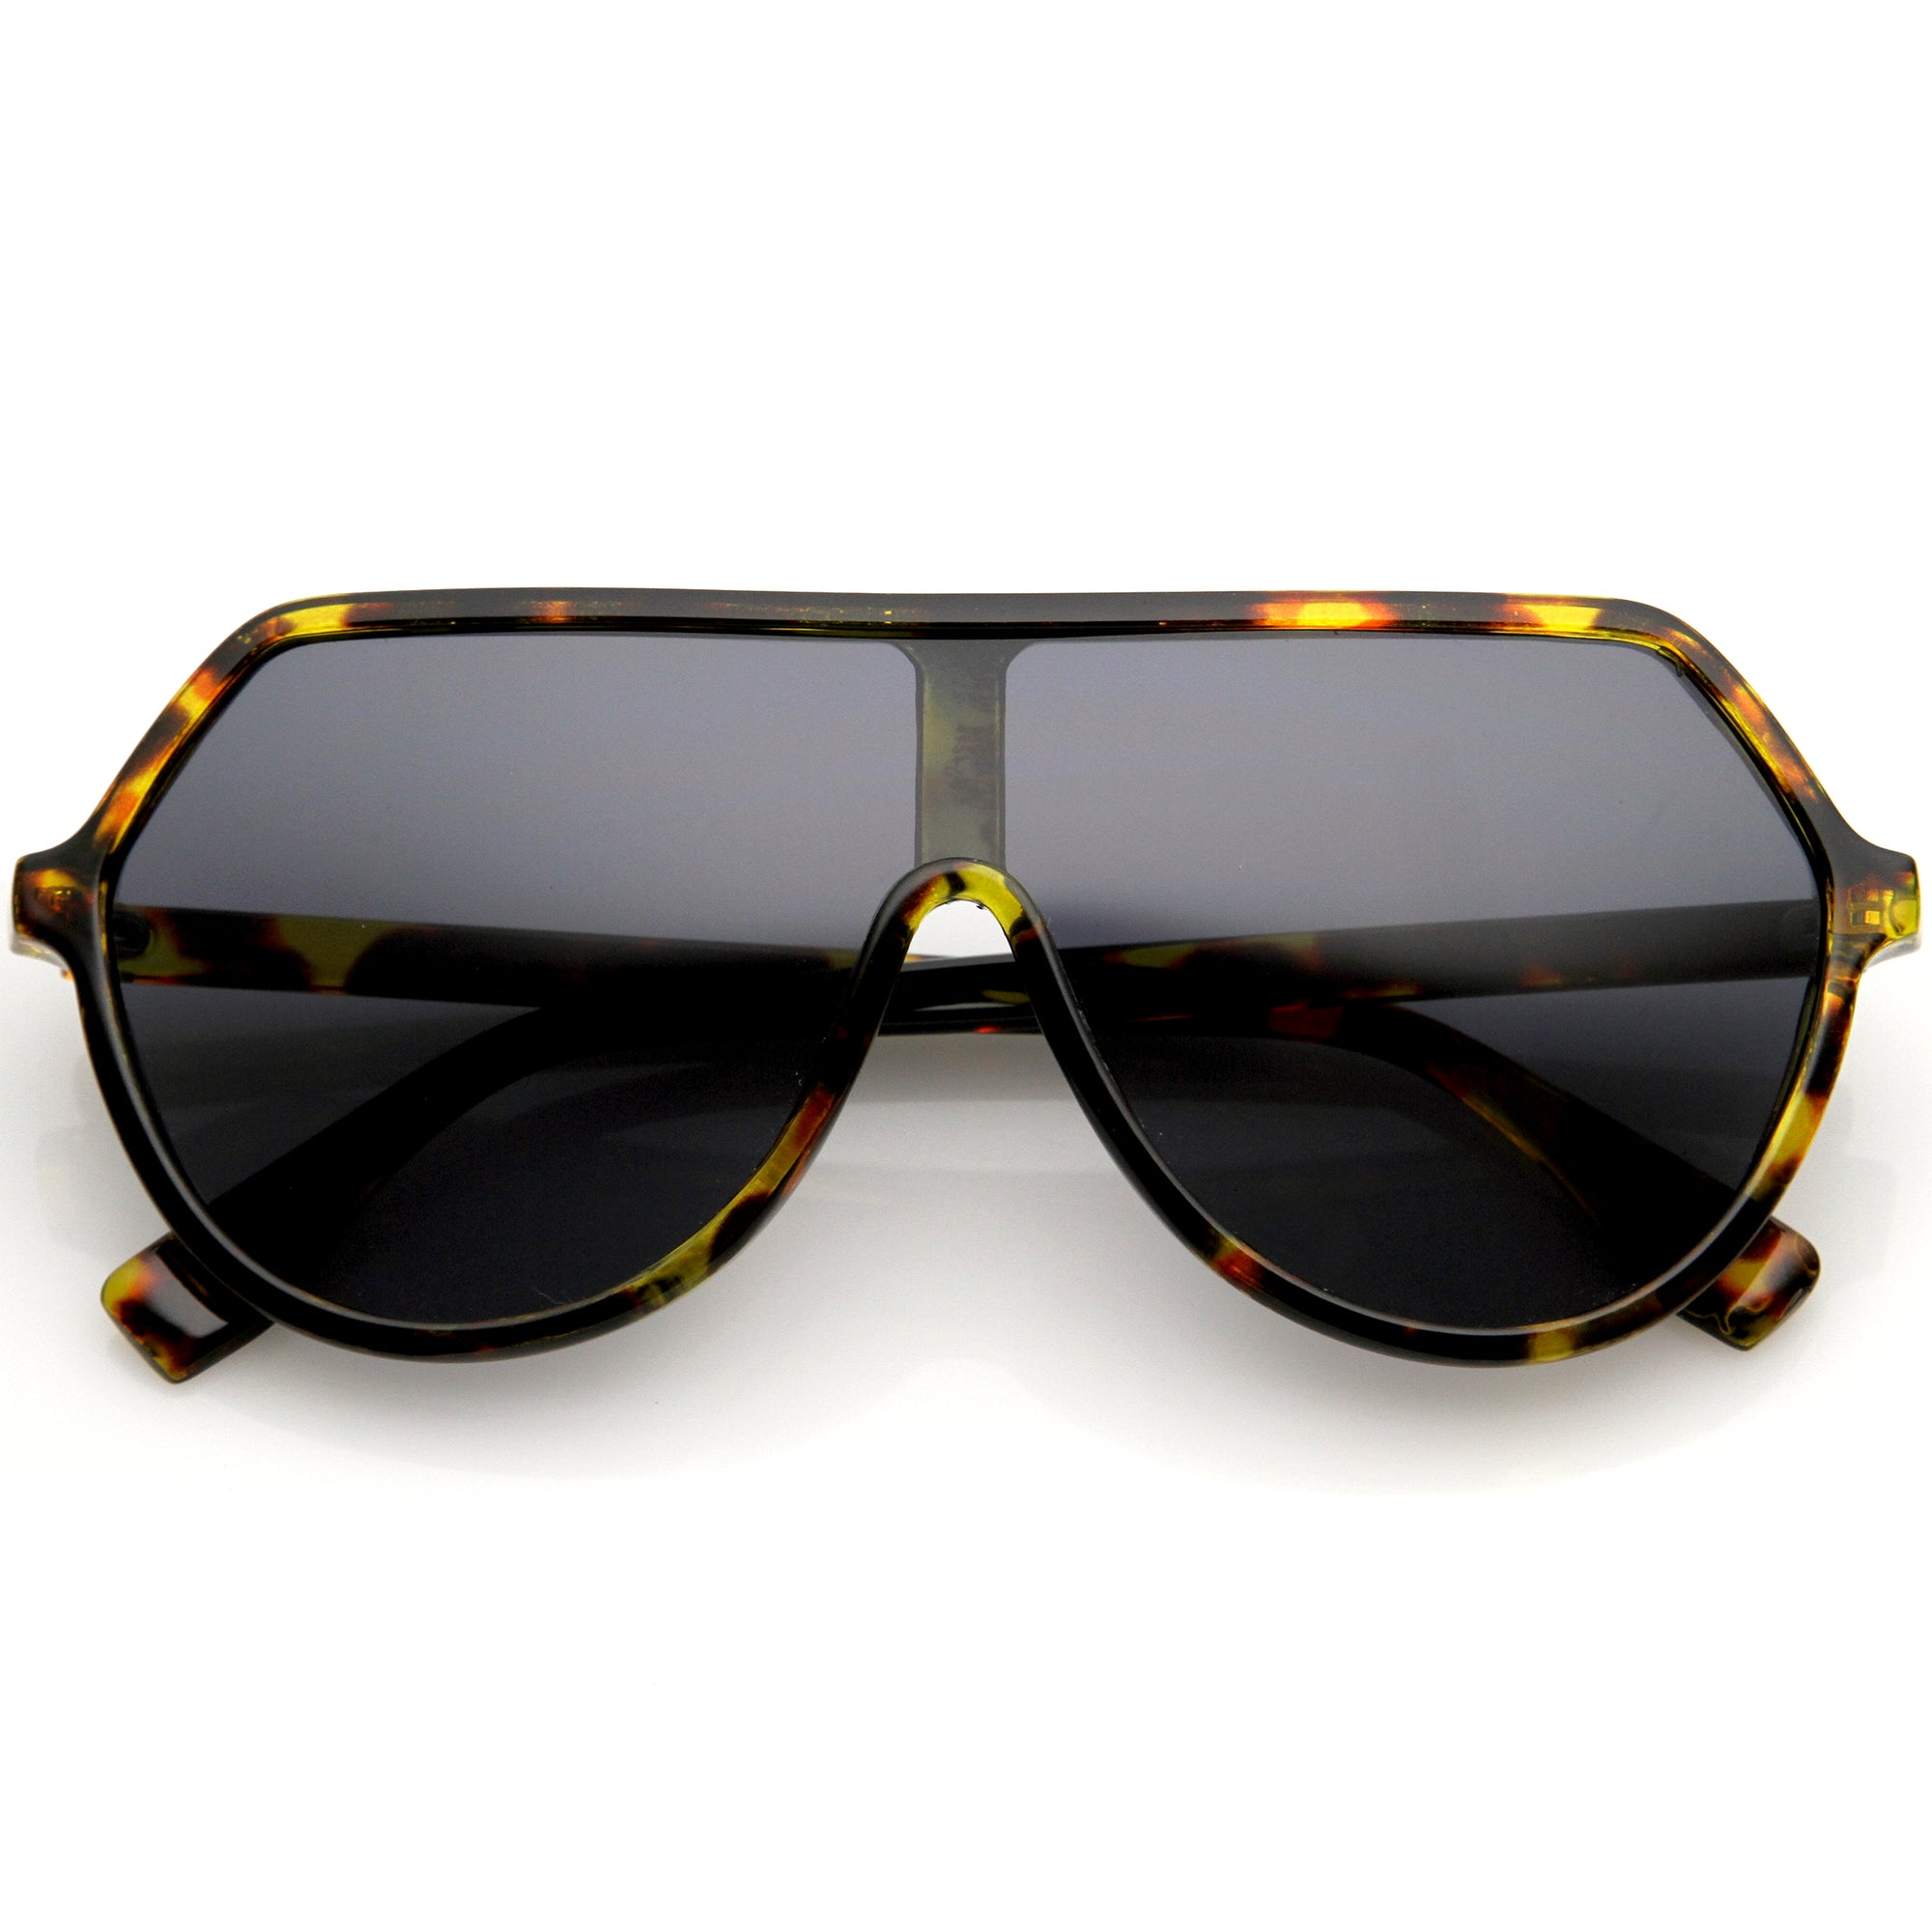 Oversized Contemporary Fashion Geometric Shield Sunglasses D112